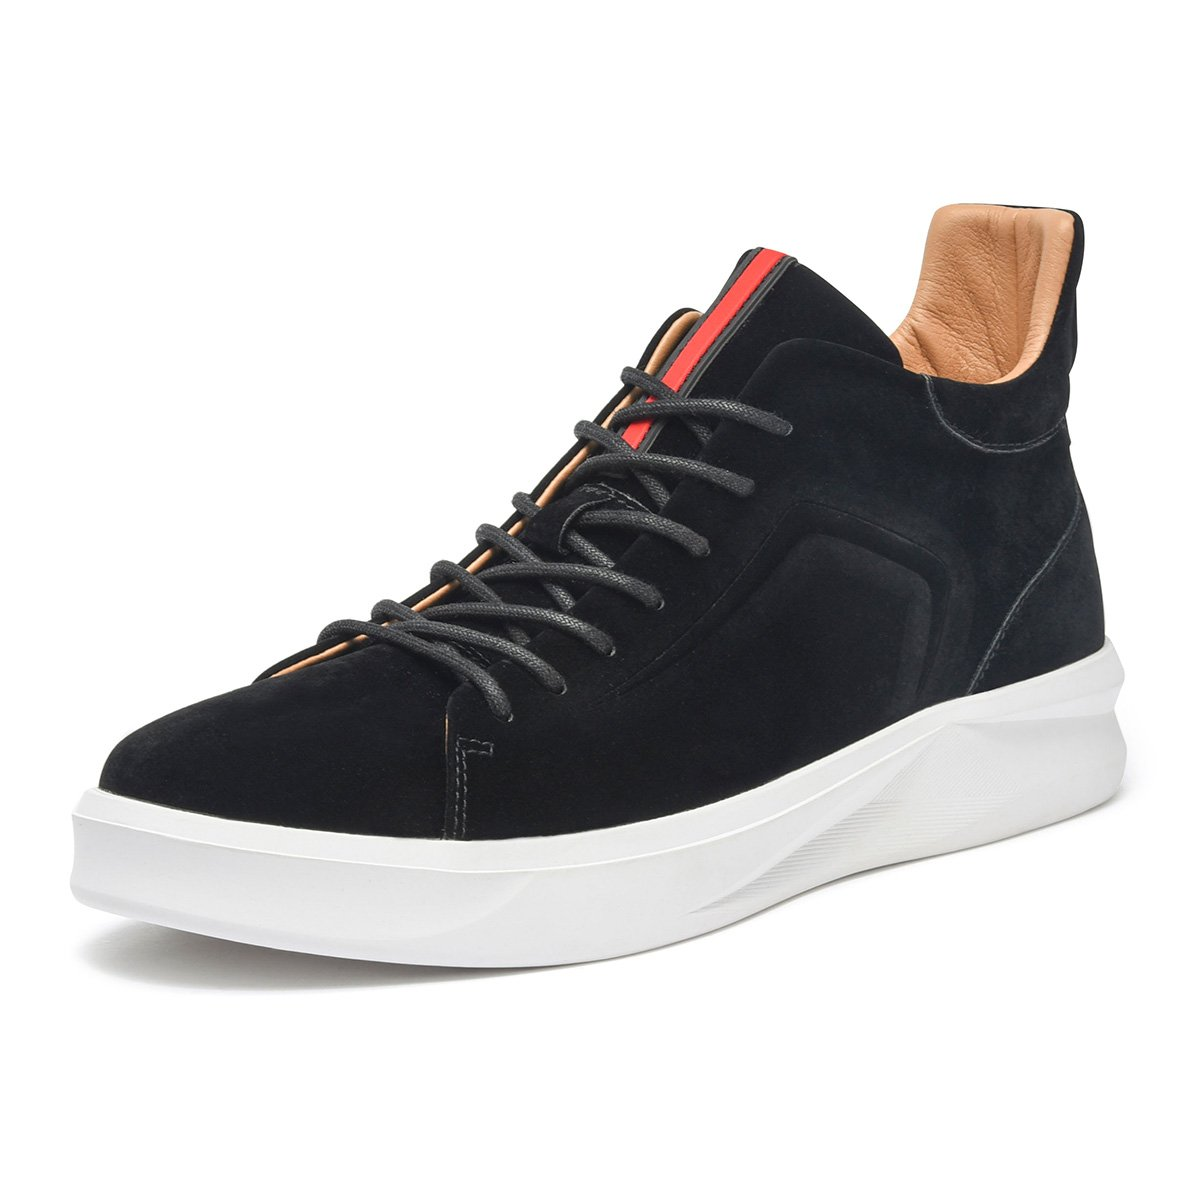 ARTISURE Men's Classic Black Suede Leather Upper High-Top Casual Sneakers Fashion Ankle Boots 8.5 M US SKS-1989HEI085